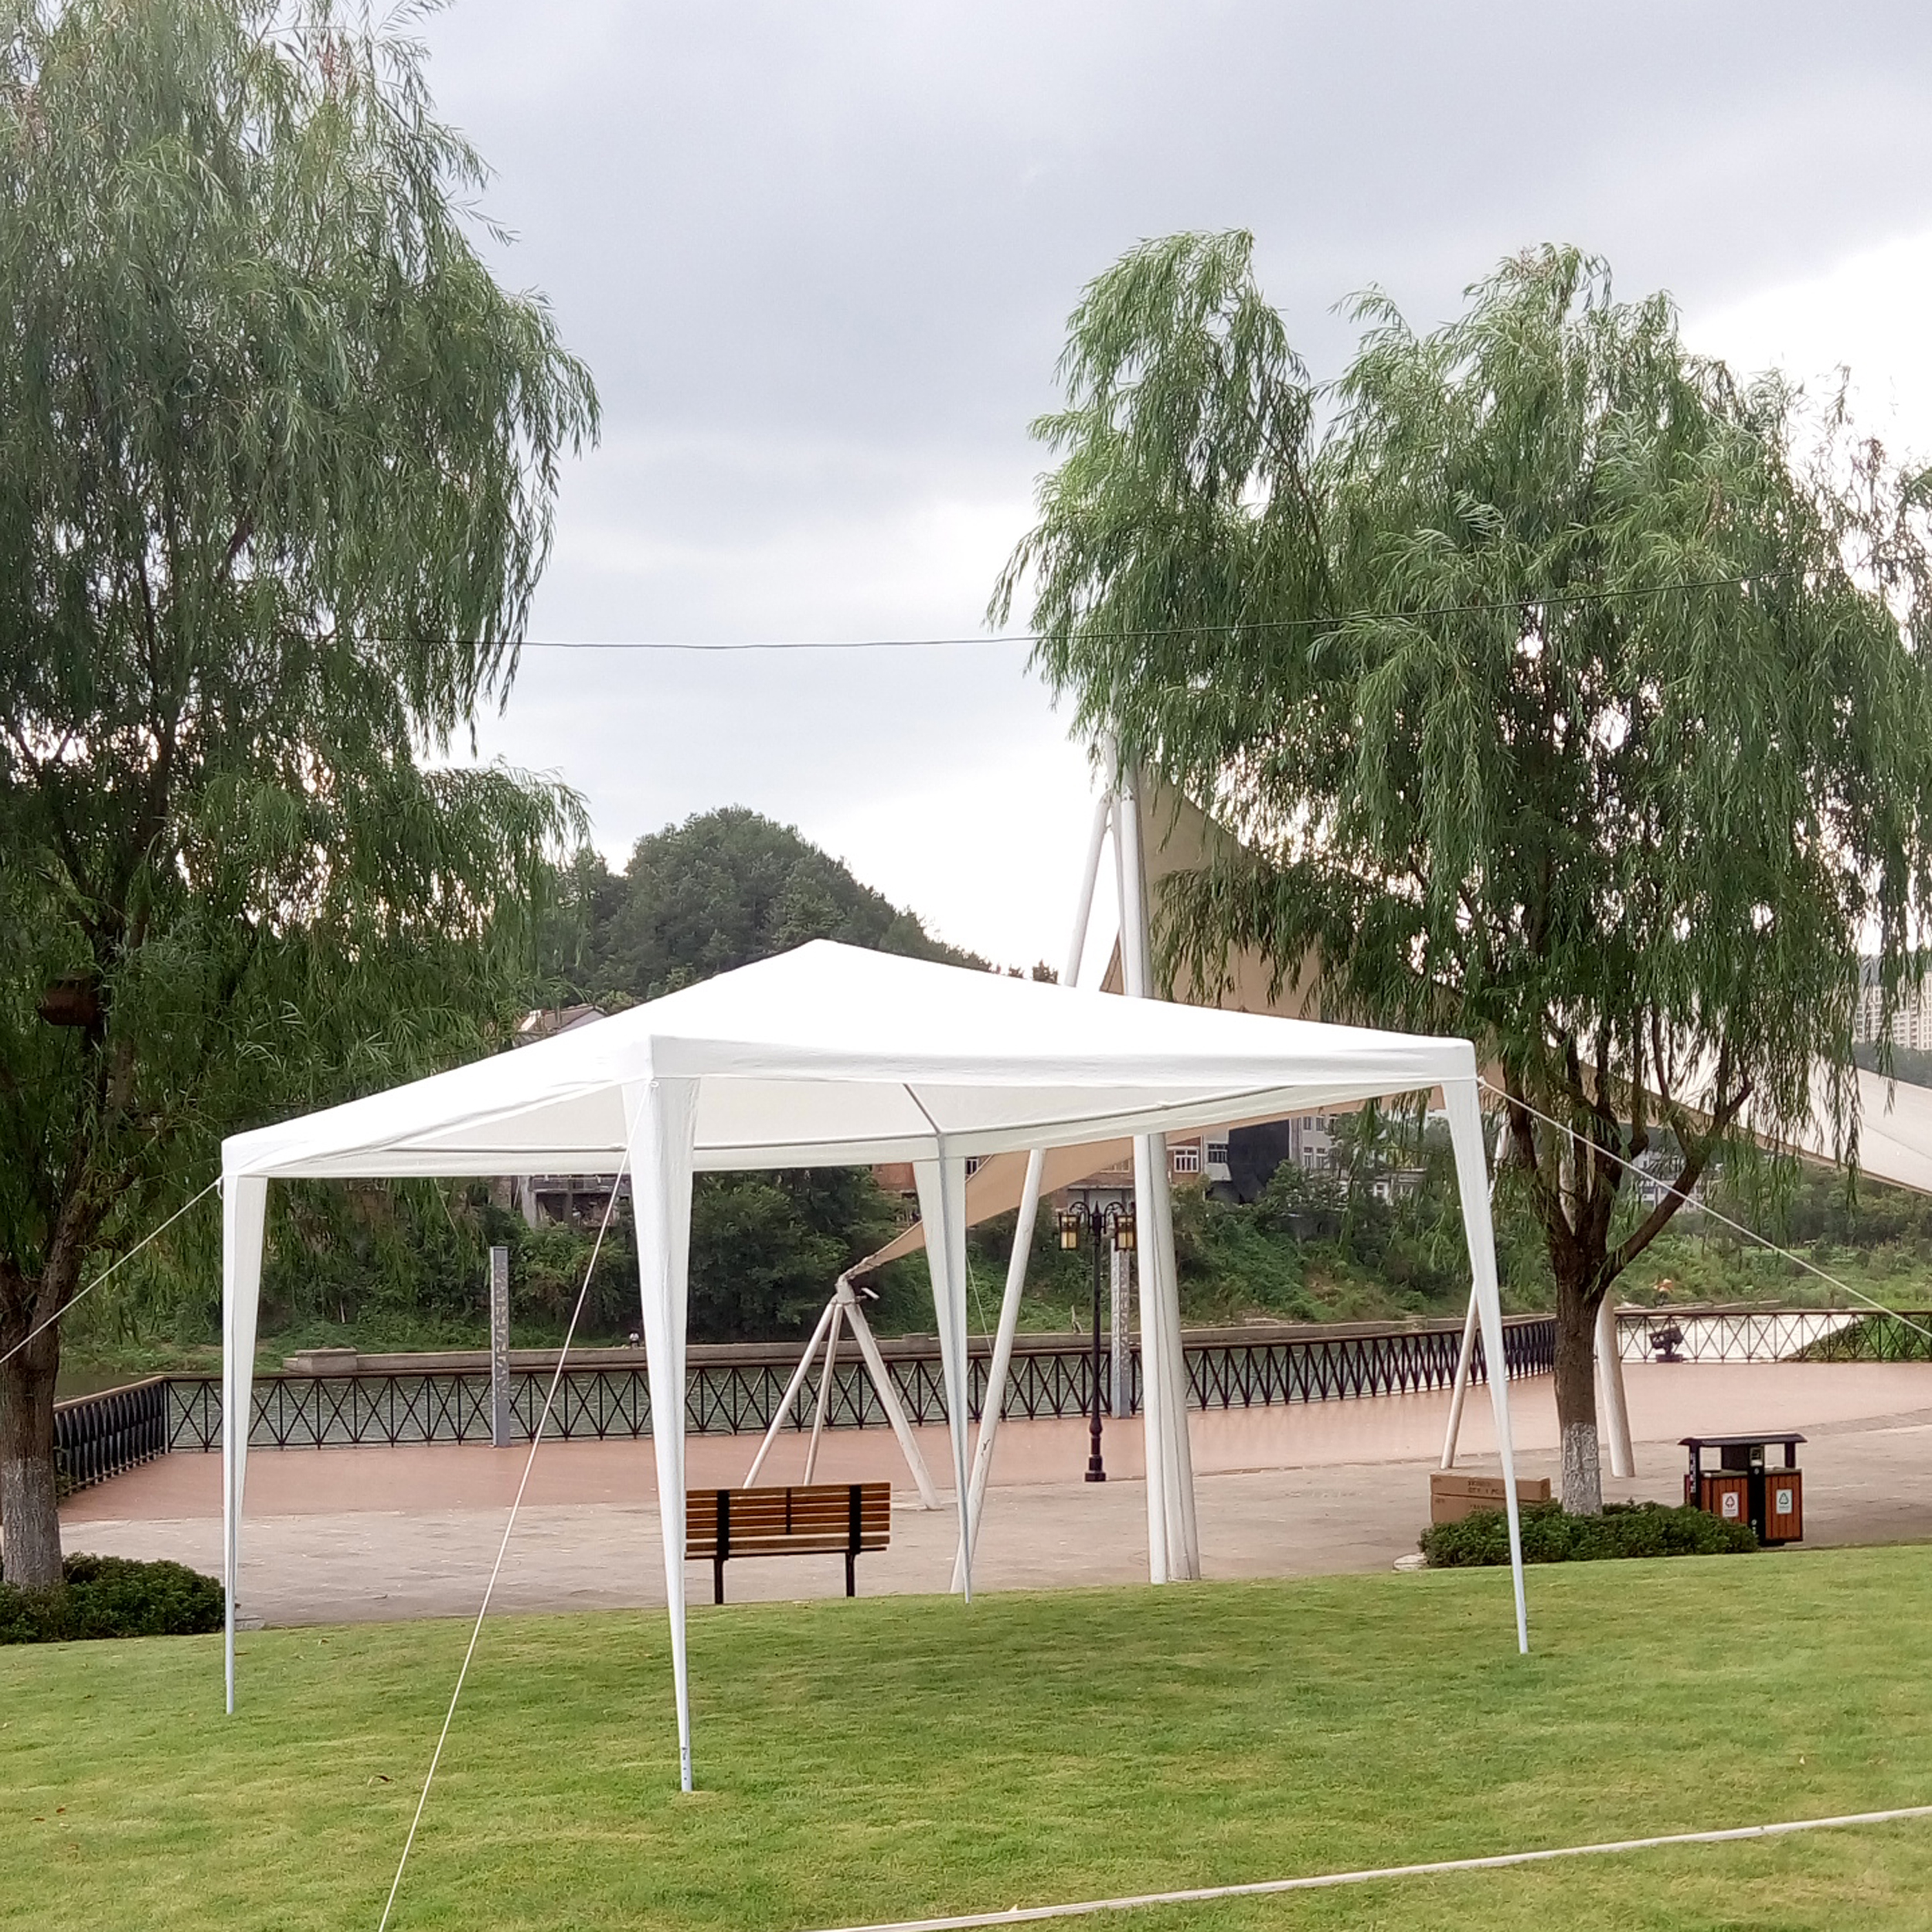 Gazebo Awning 3mx3m Pe Garden Gazebo Marquee Canopy Awning Party Wedding